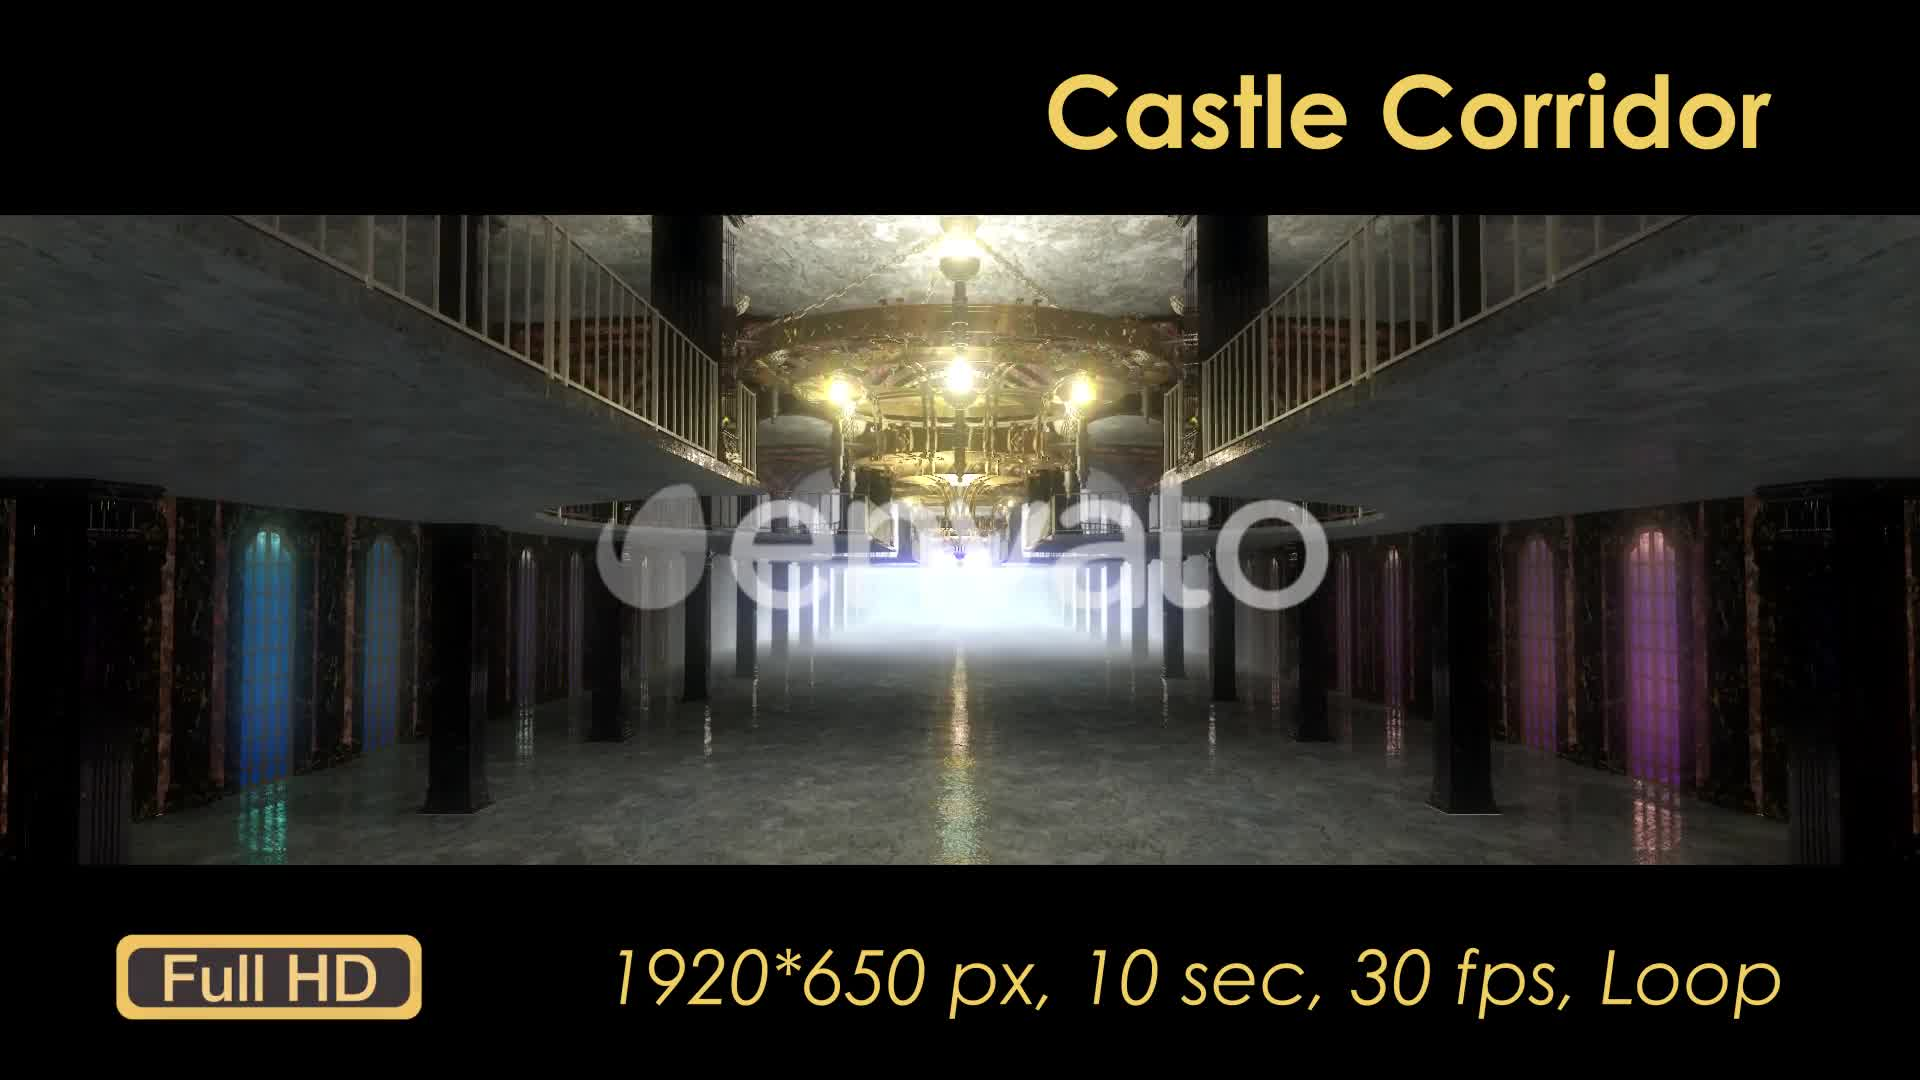 Castle Interior Videohive 22120312 Motion Graphics Image 8